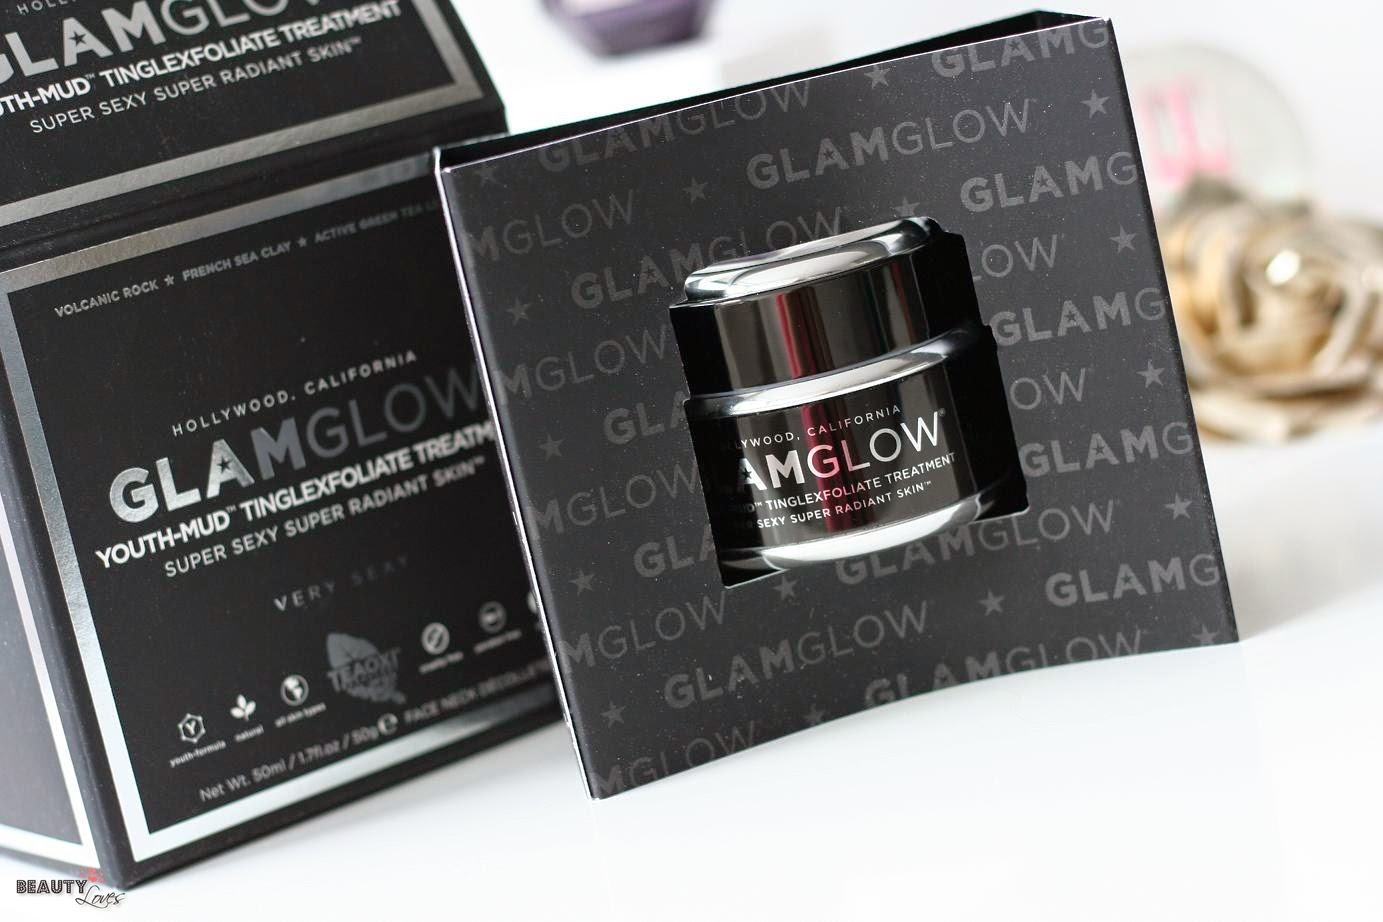 how to use glamglow mud mask